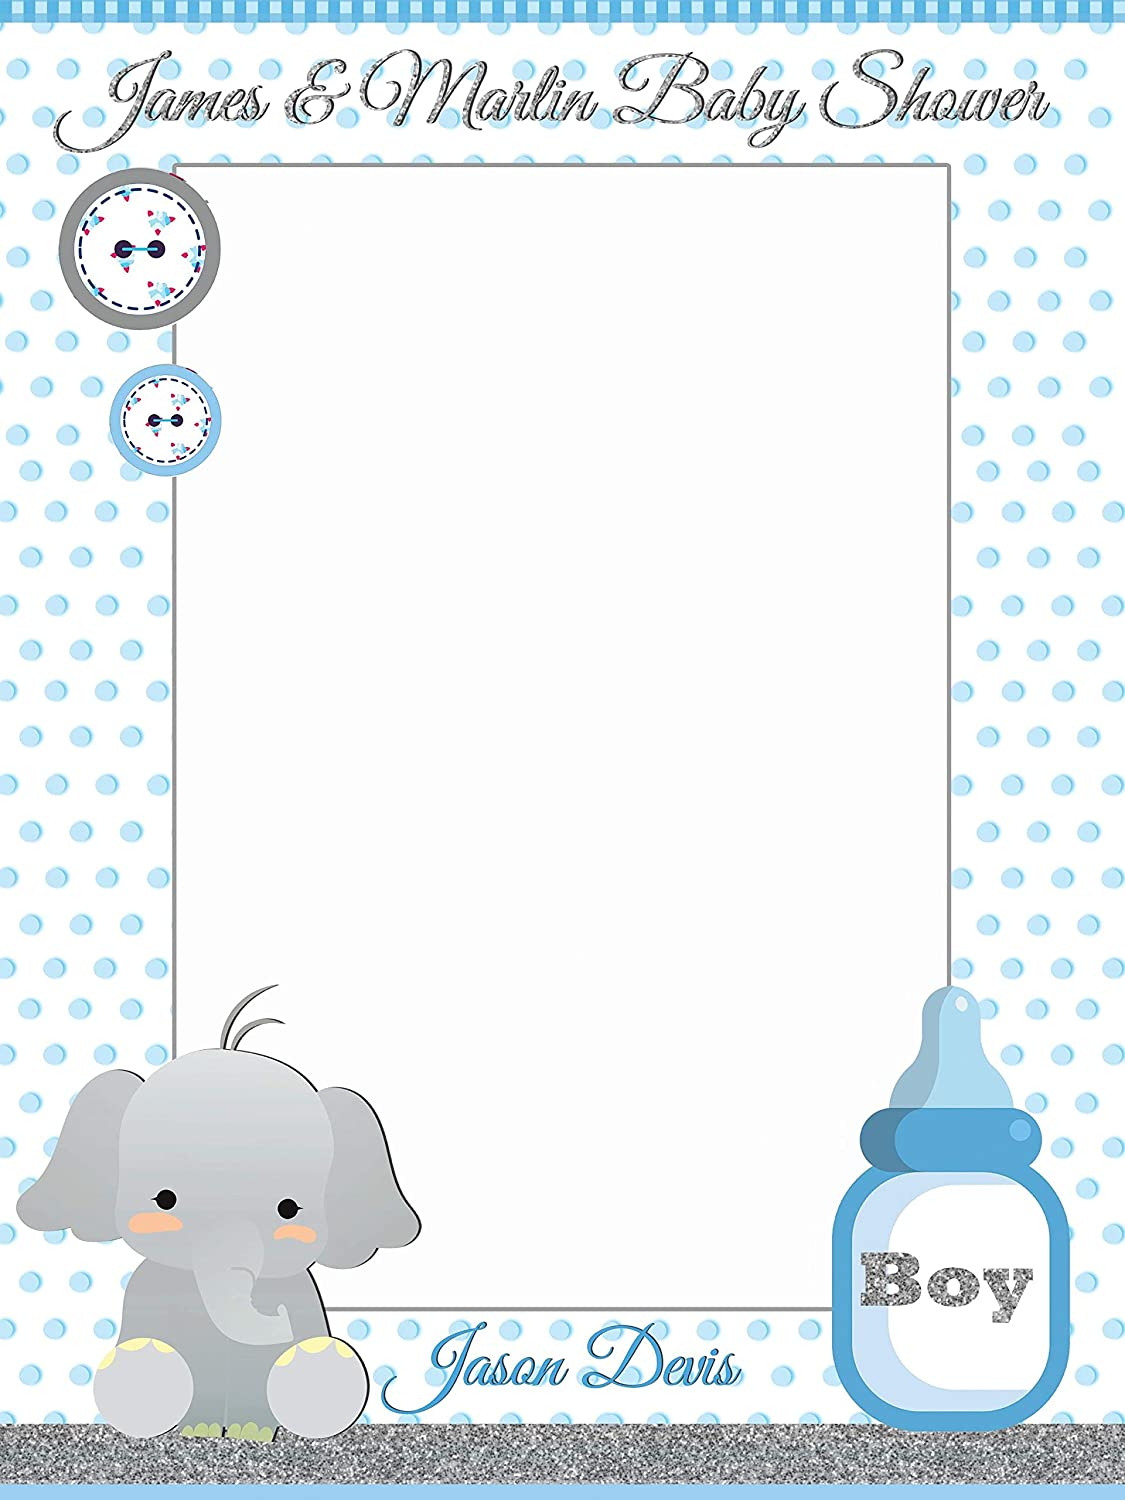 Elephant Baby Shower Decorations, Elephant Photo Booth Prop - Sizes 36x24,  48x36; Personalized Little Elephant Photobooth Frame, animal, baby boy  Handmade ...